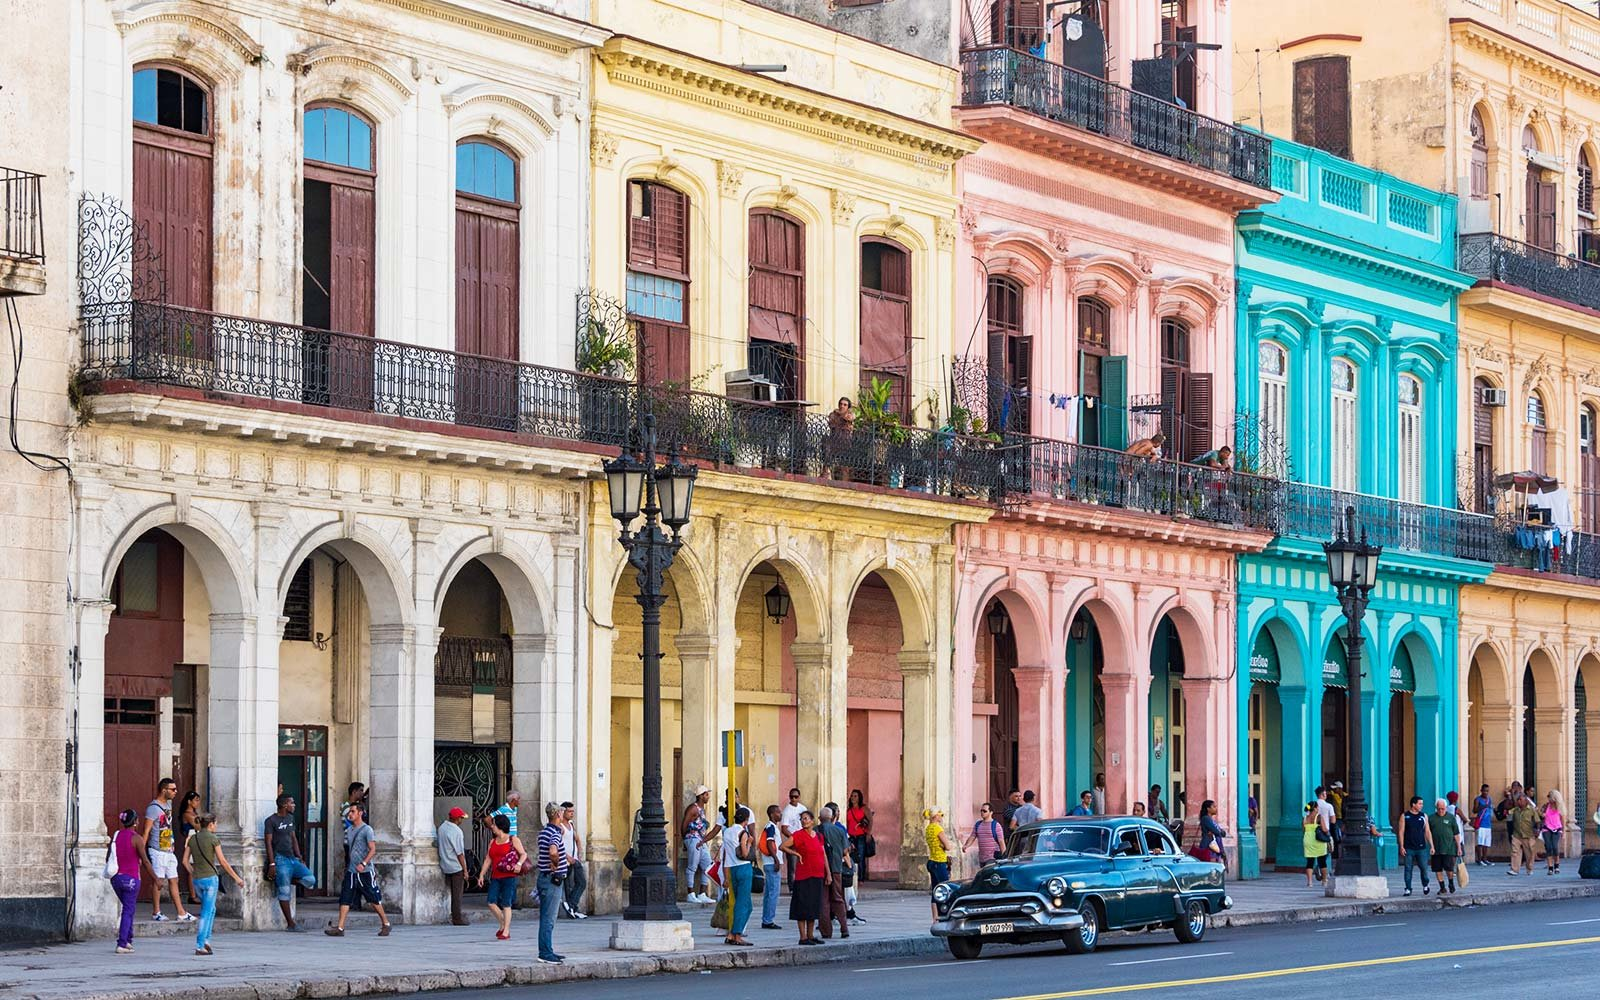 A Flight to Cuba Costs Less Than $60